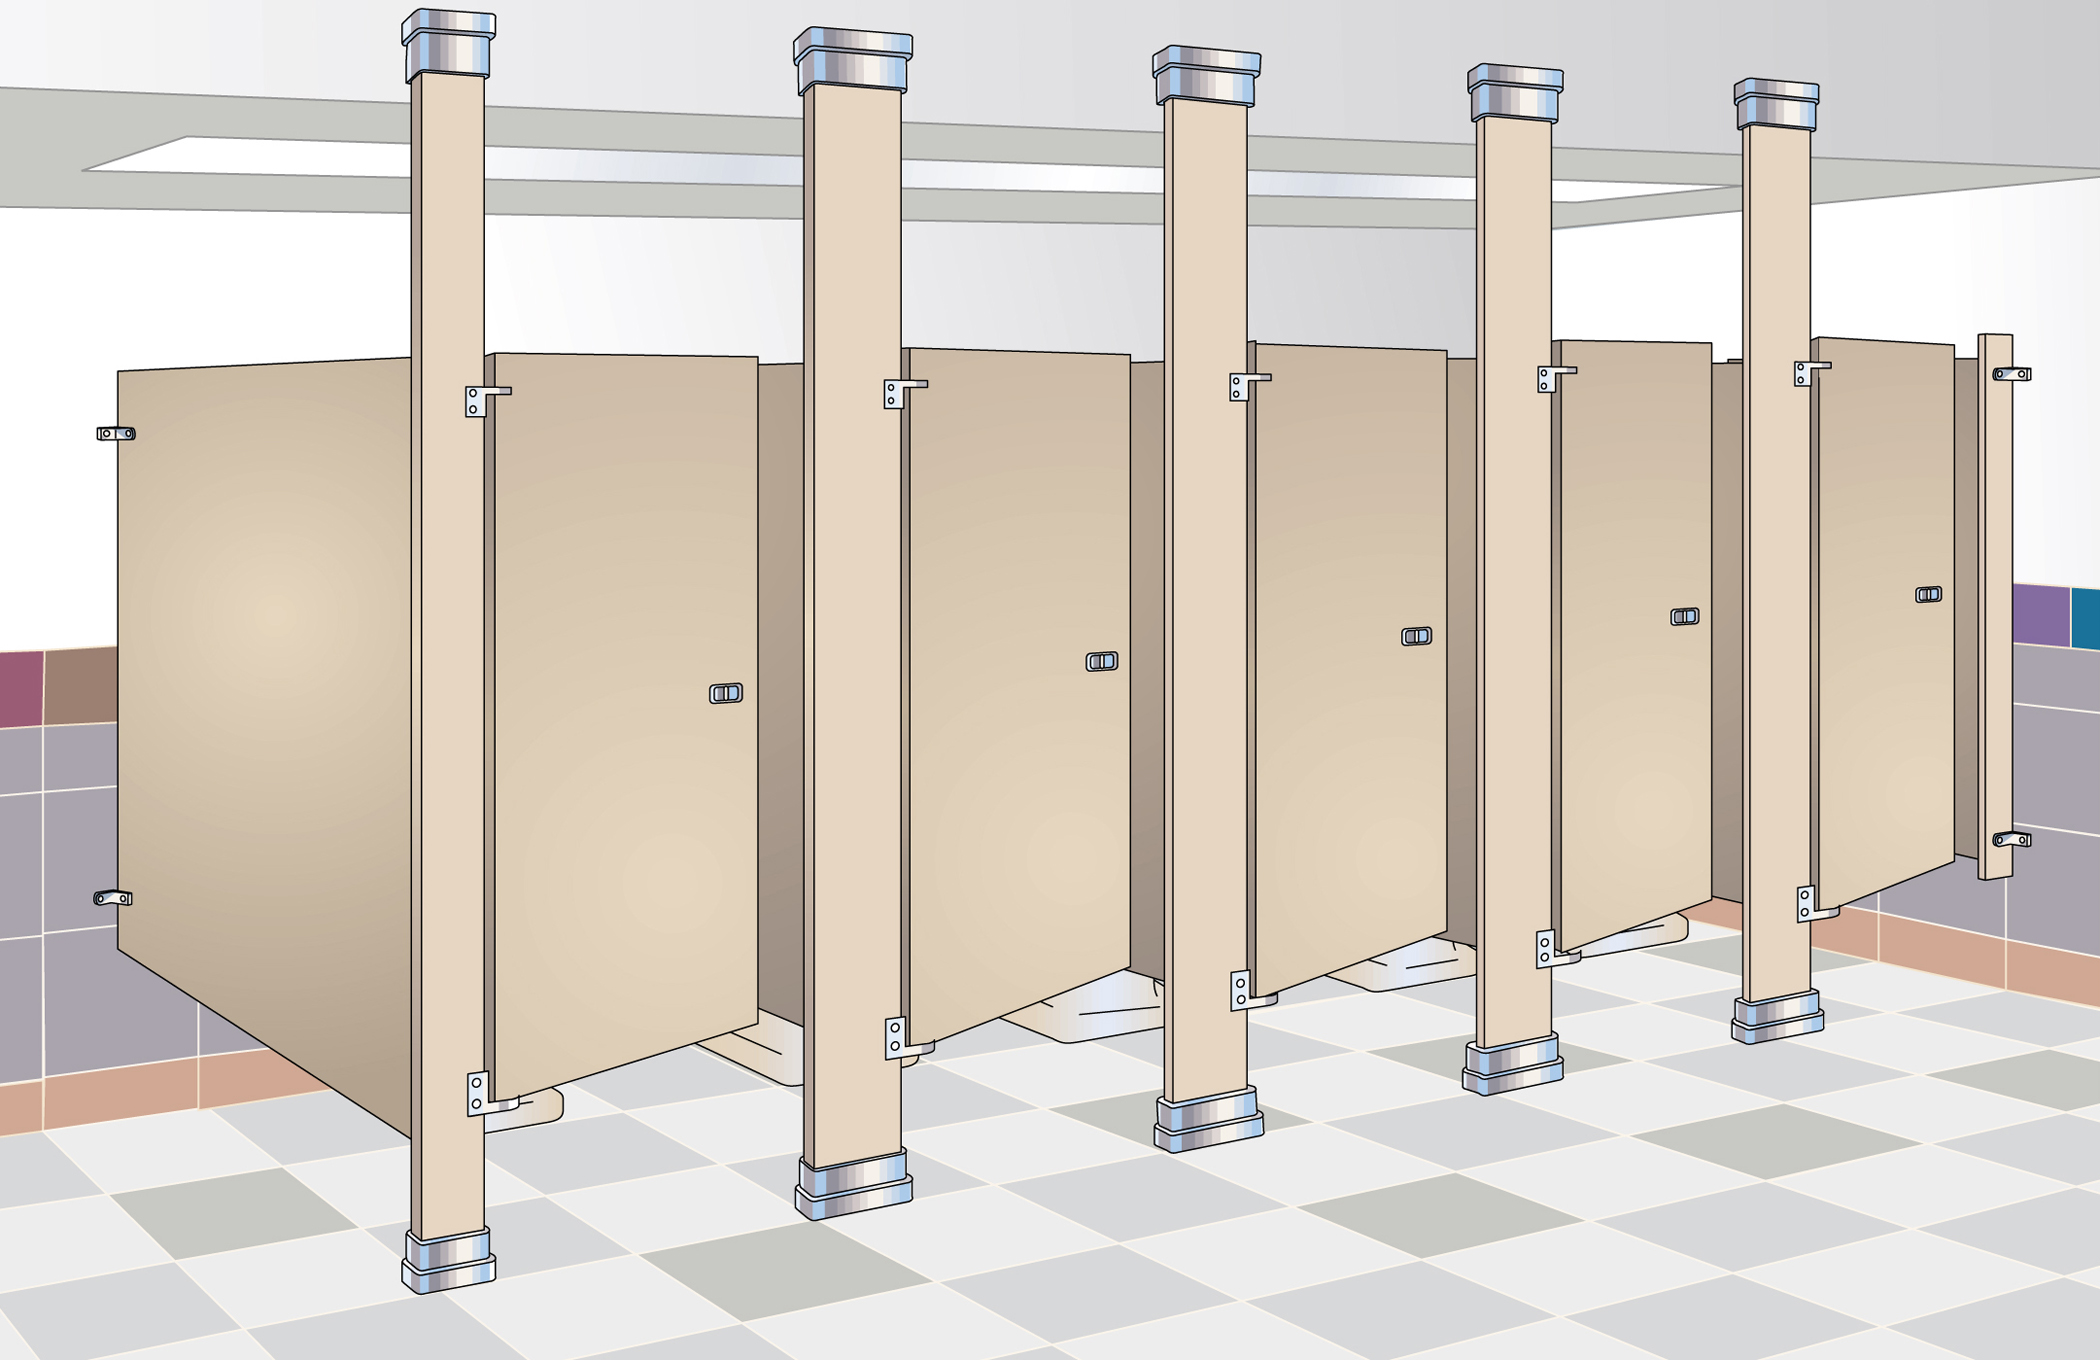 Bathroom Partitions Materials what's best material for restroom dividers for toilet facilities? |